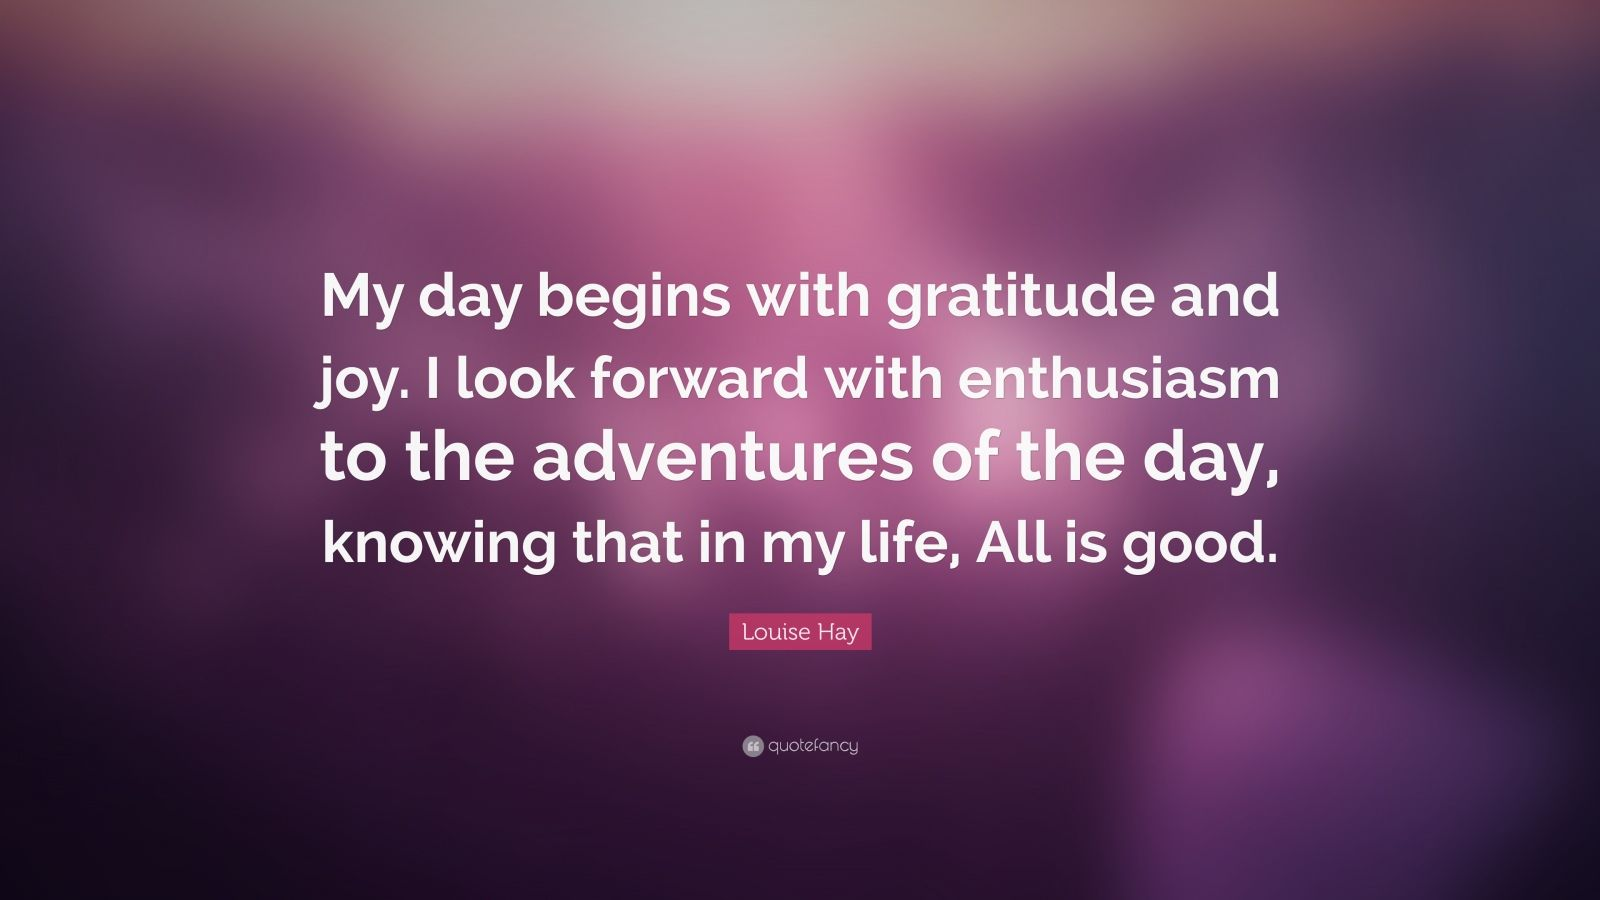 """Louise Hay Quote: """"My day begins with gratitude and joy. I look forward with enthusiasm to the adventures of the day, knowing that in my life, All is good."""""""